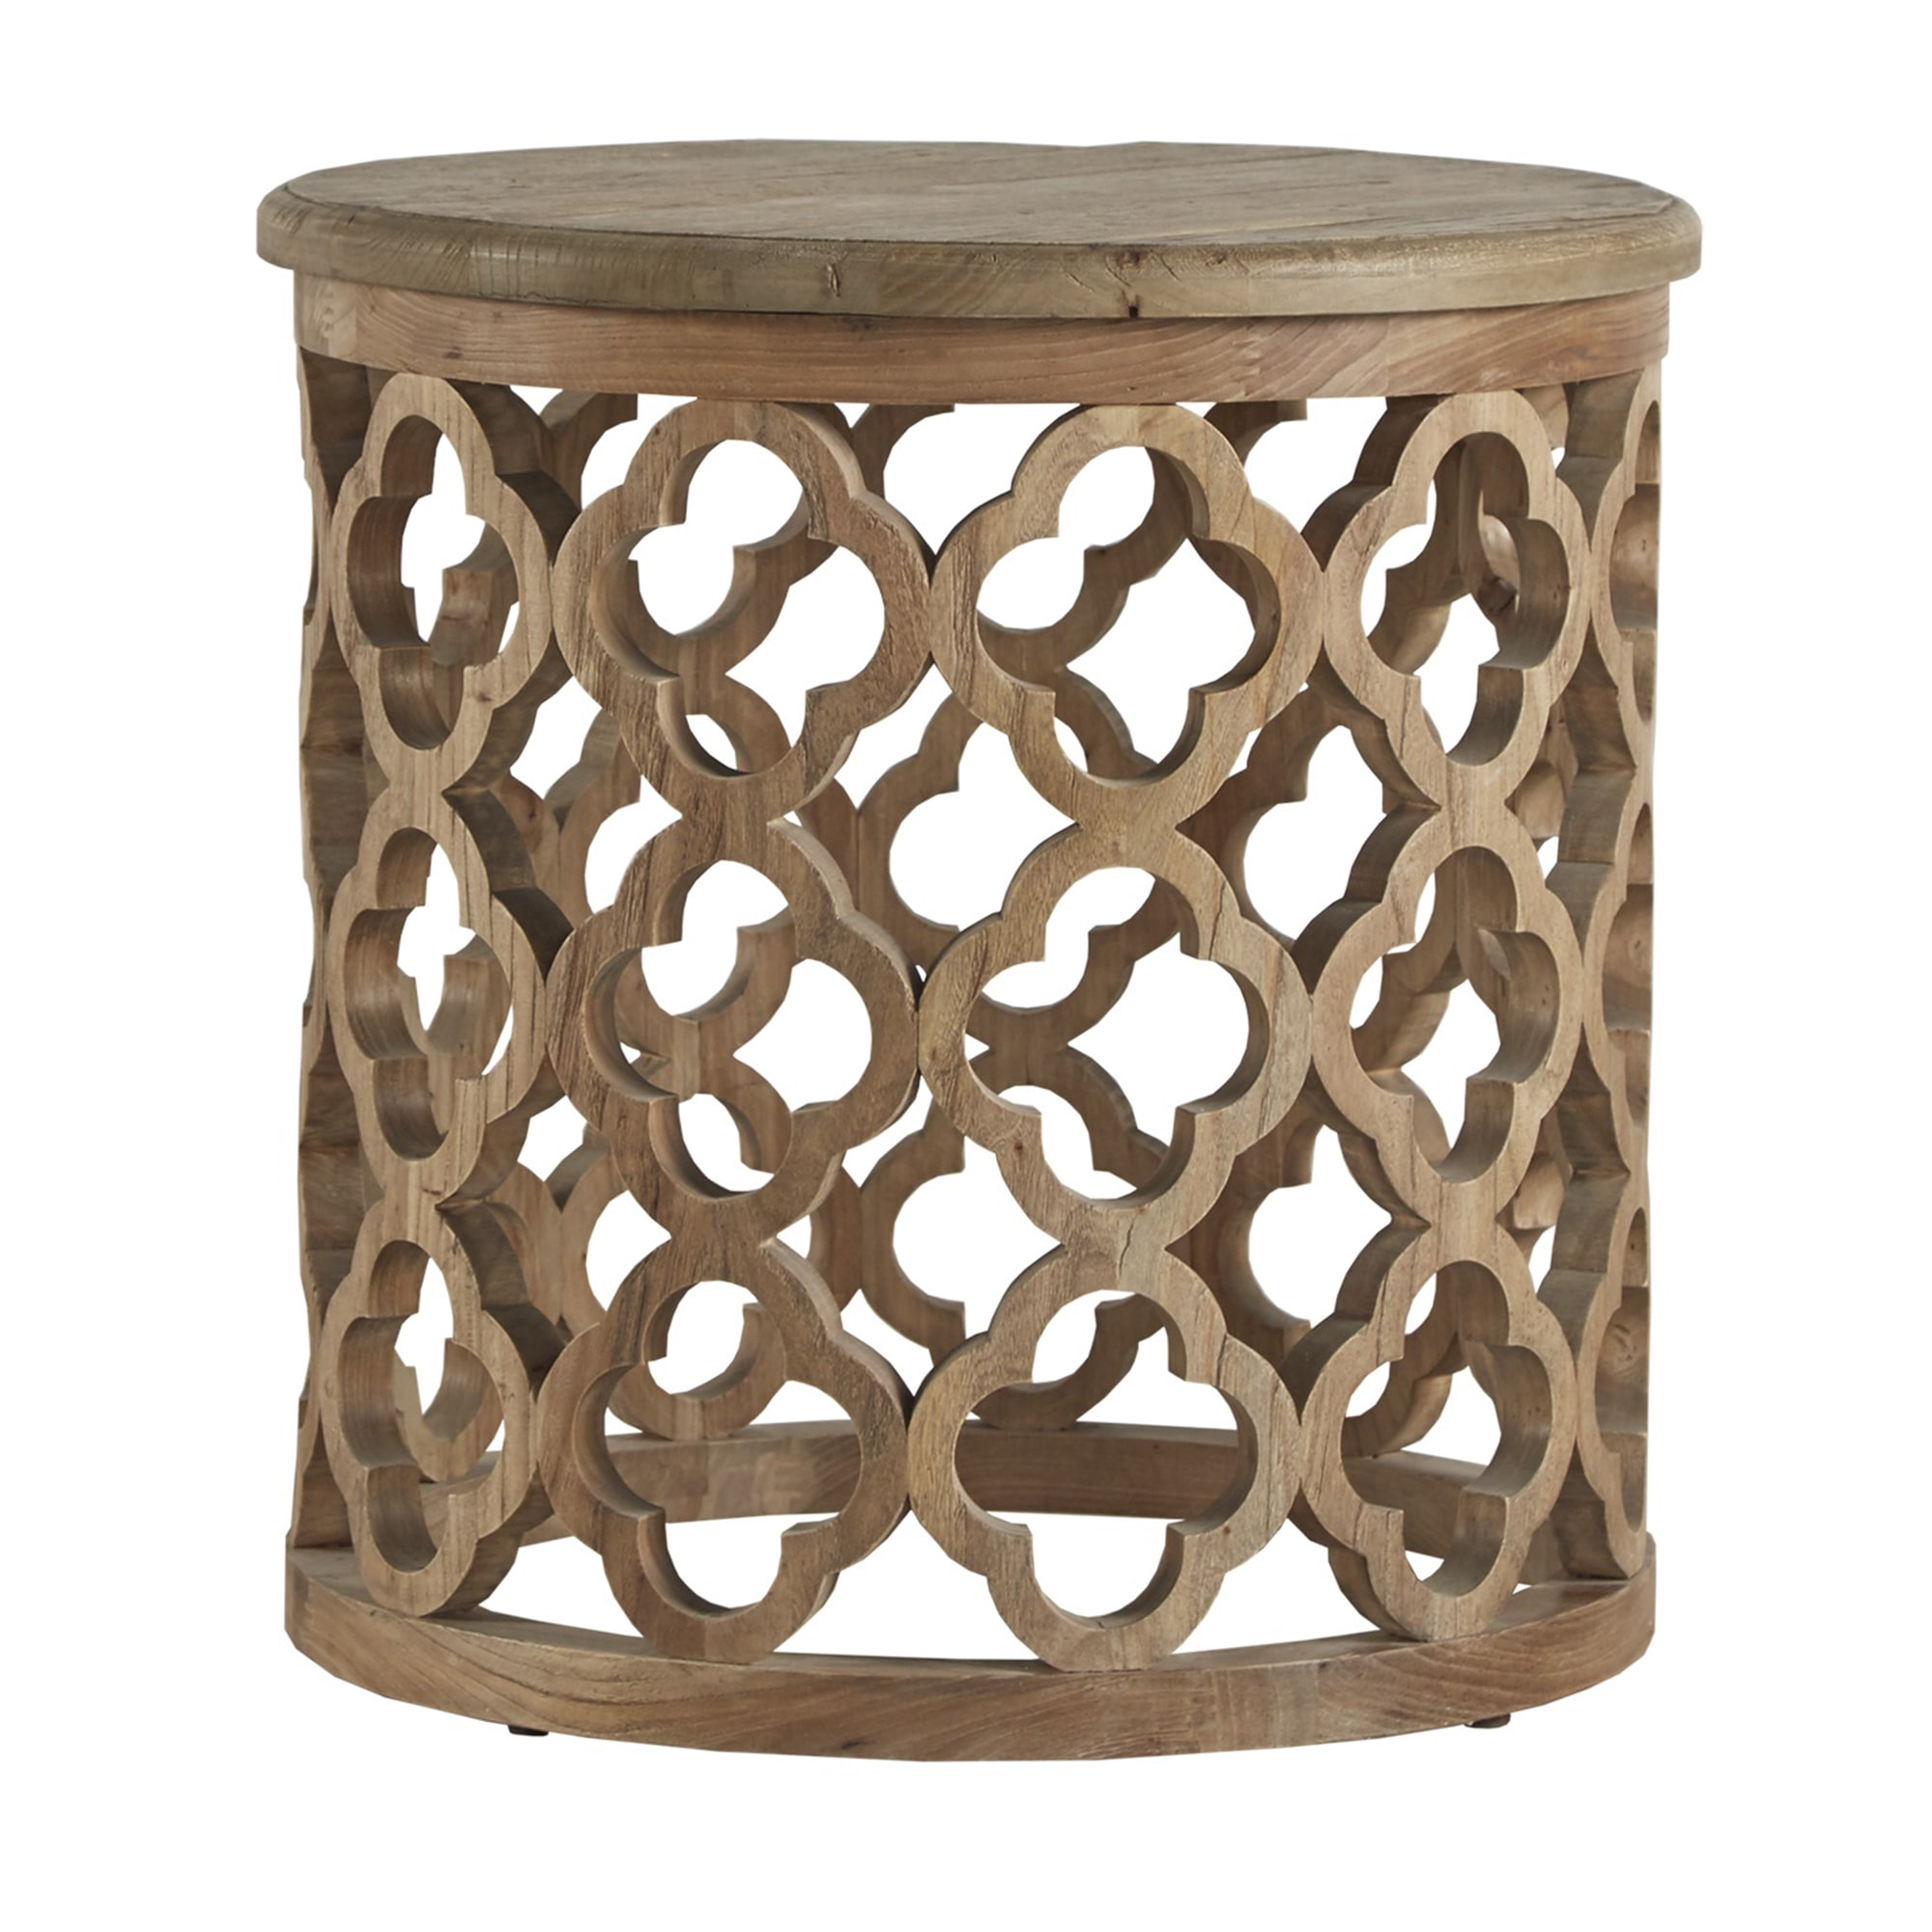 inspire vince reclaimed wood moroccan trellis drum accent table outdoor departments mirrored chest drawers ikea breakfast skinny bedside cordless lamps unfinished nightstand